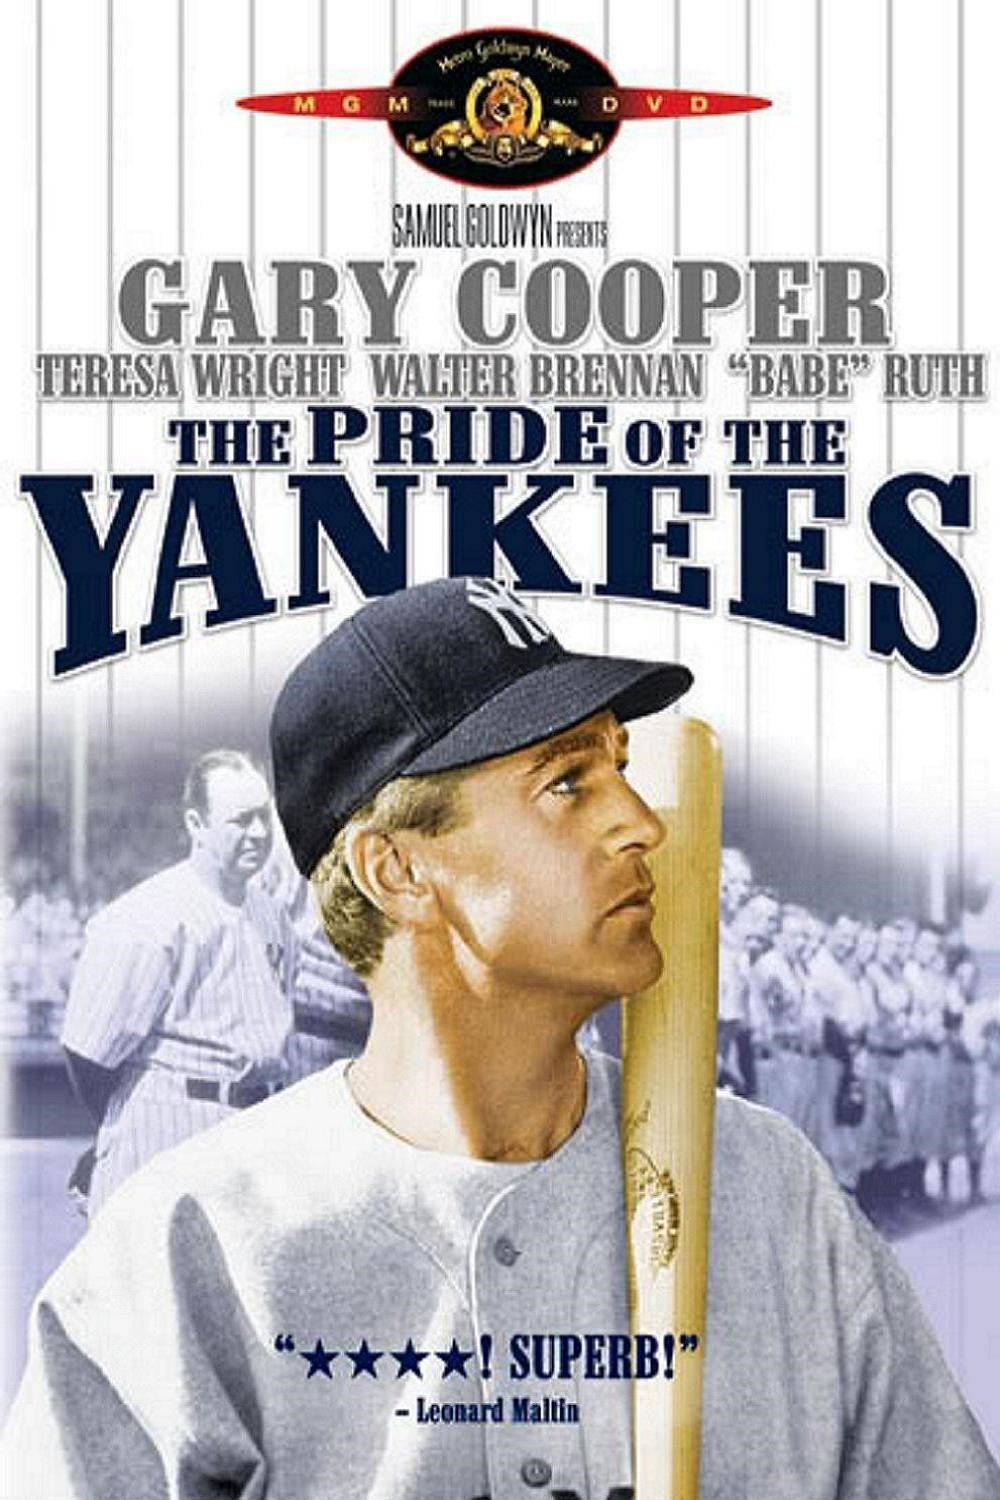 Image result for THE PRIDE OF THE YANKEES POSTER